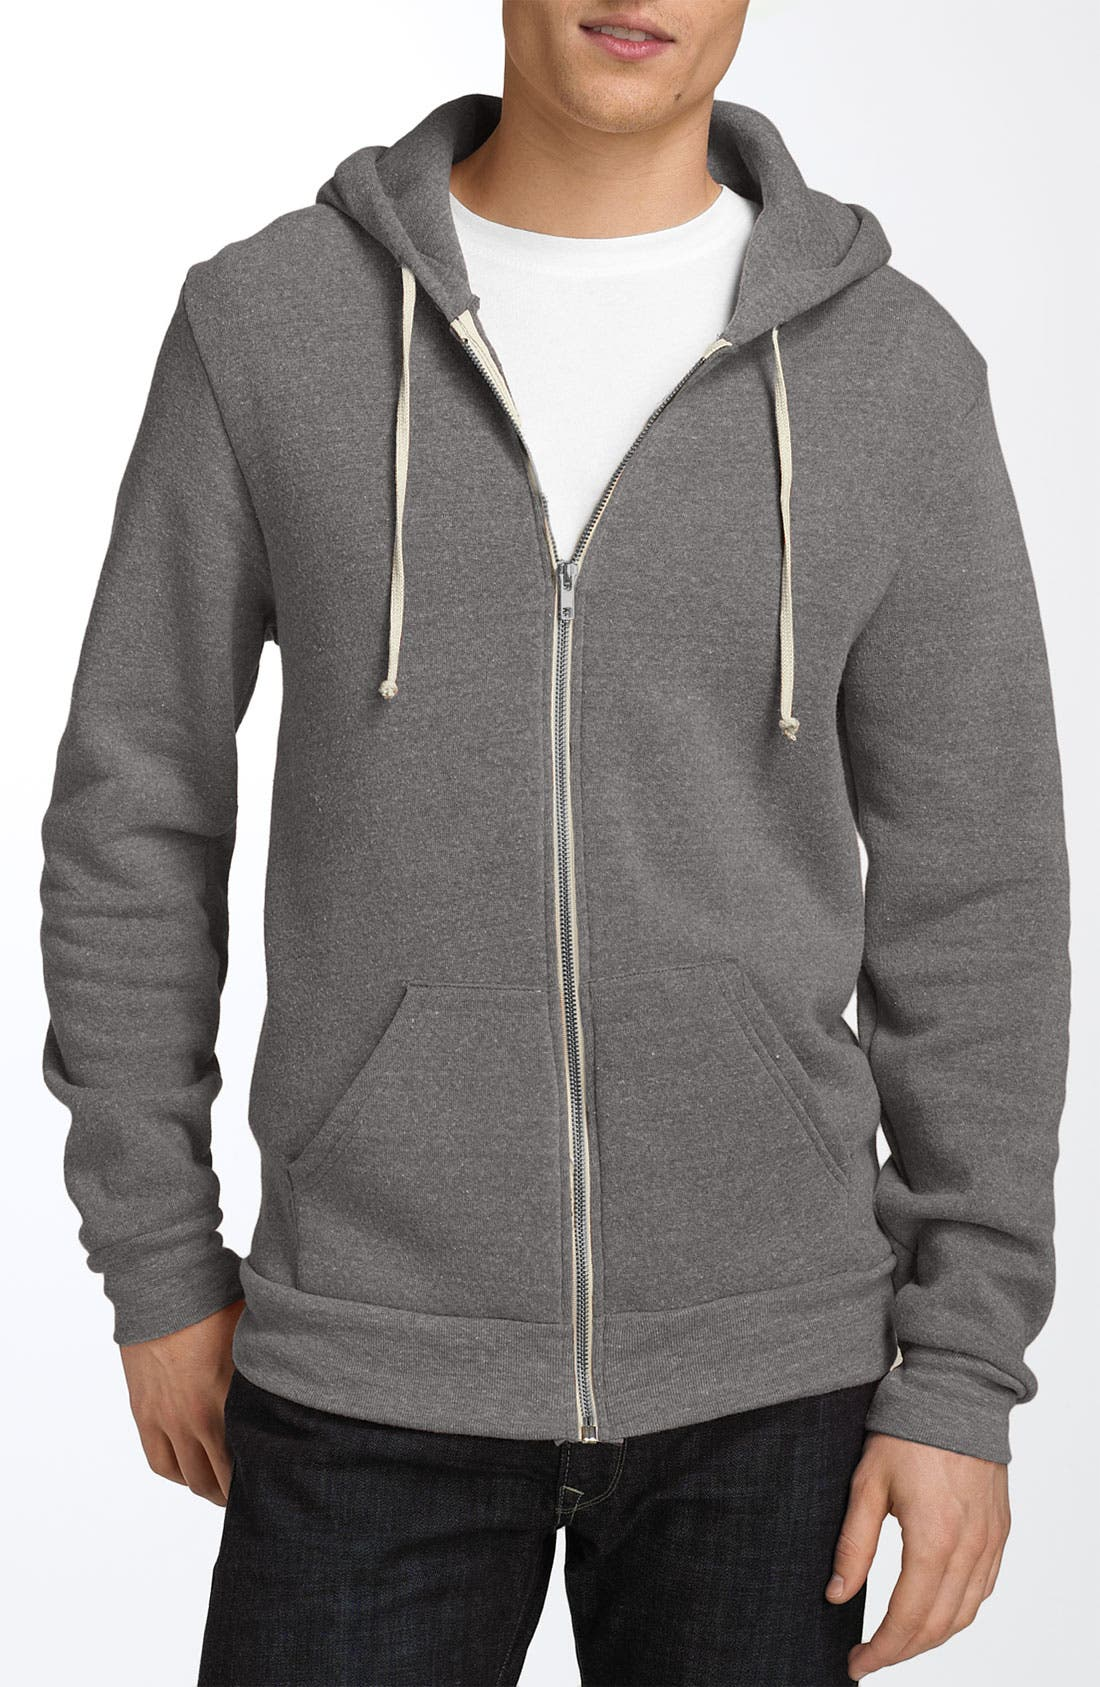 'Rocky' Trim Fit Hoodie,                             Main thumbnail 1, color,                             Grey Heather